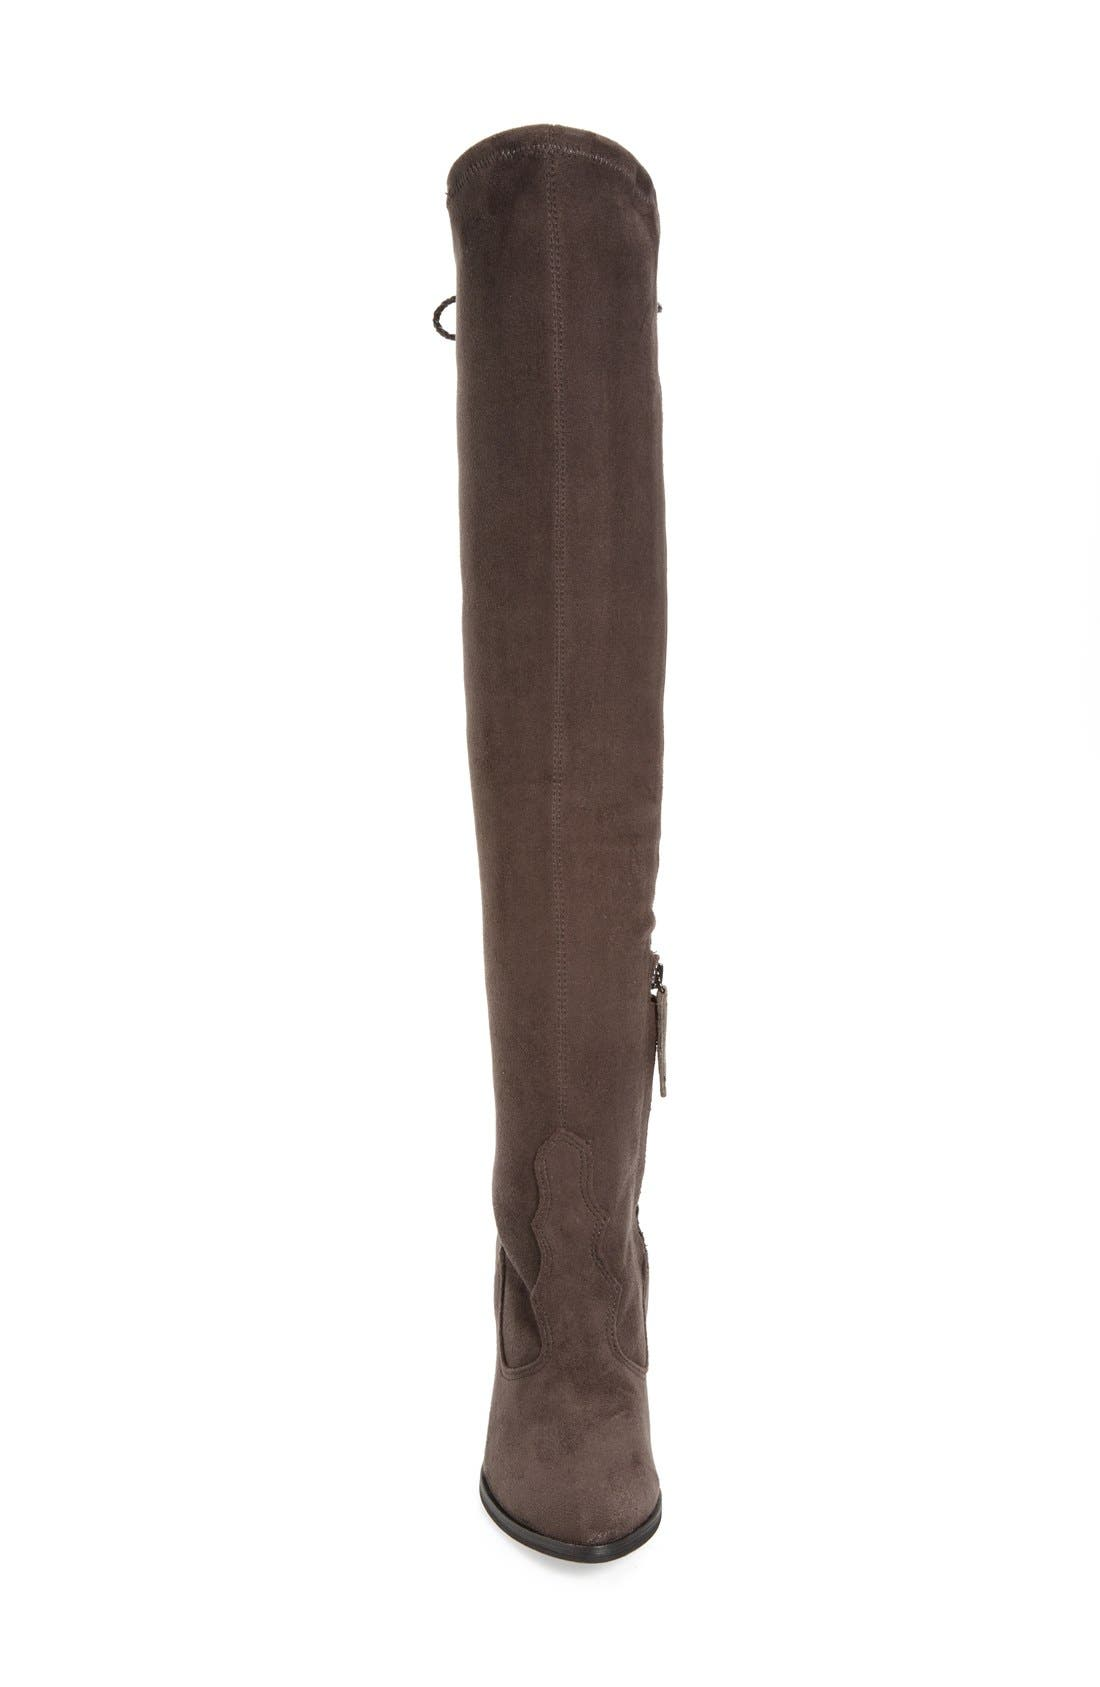 Alternate Image 3  - Dolce Vita 'Chance' Over the Knee Stretch Boot (Women) (Narrow Calf)